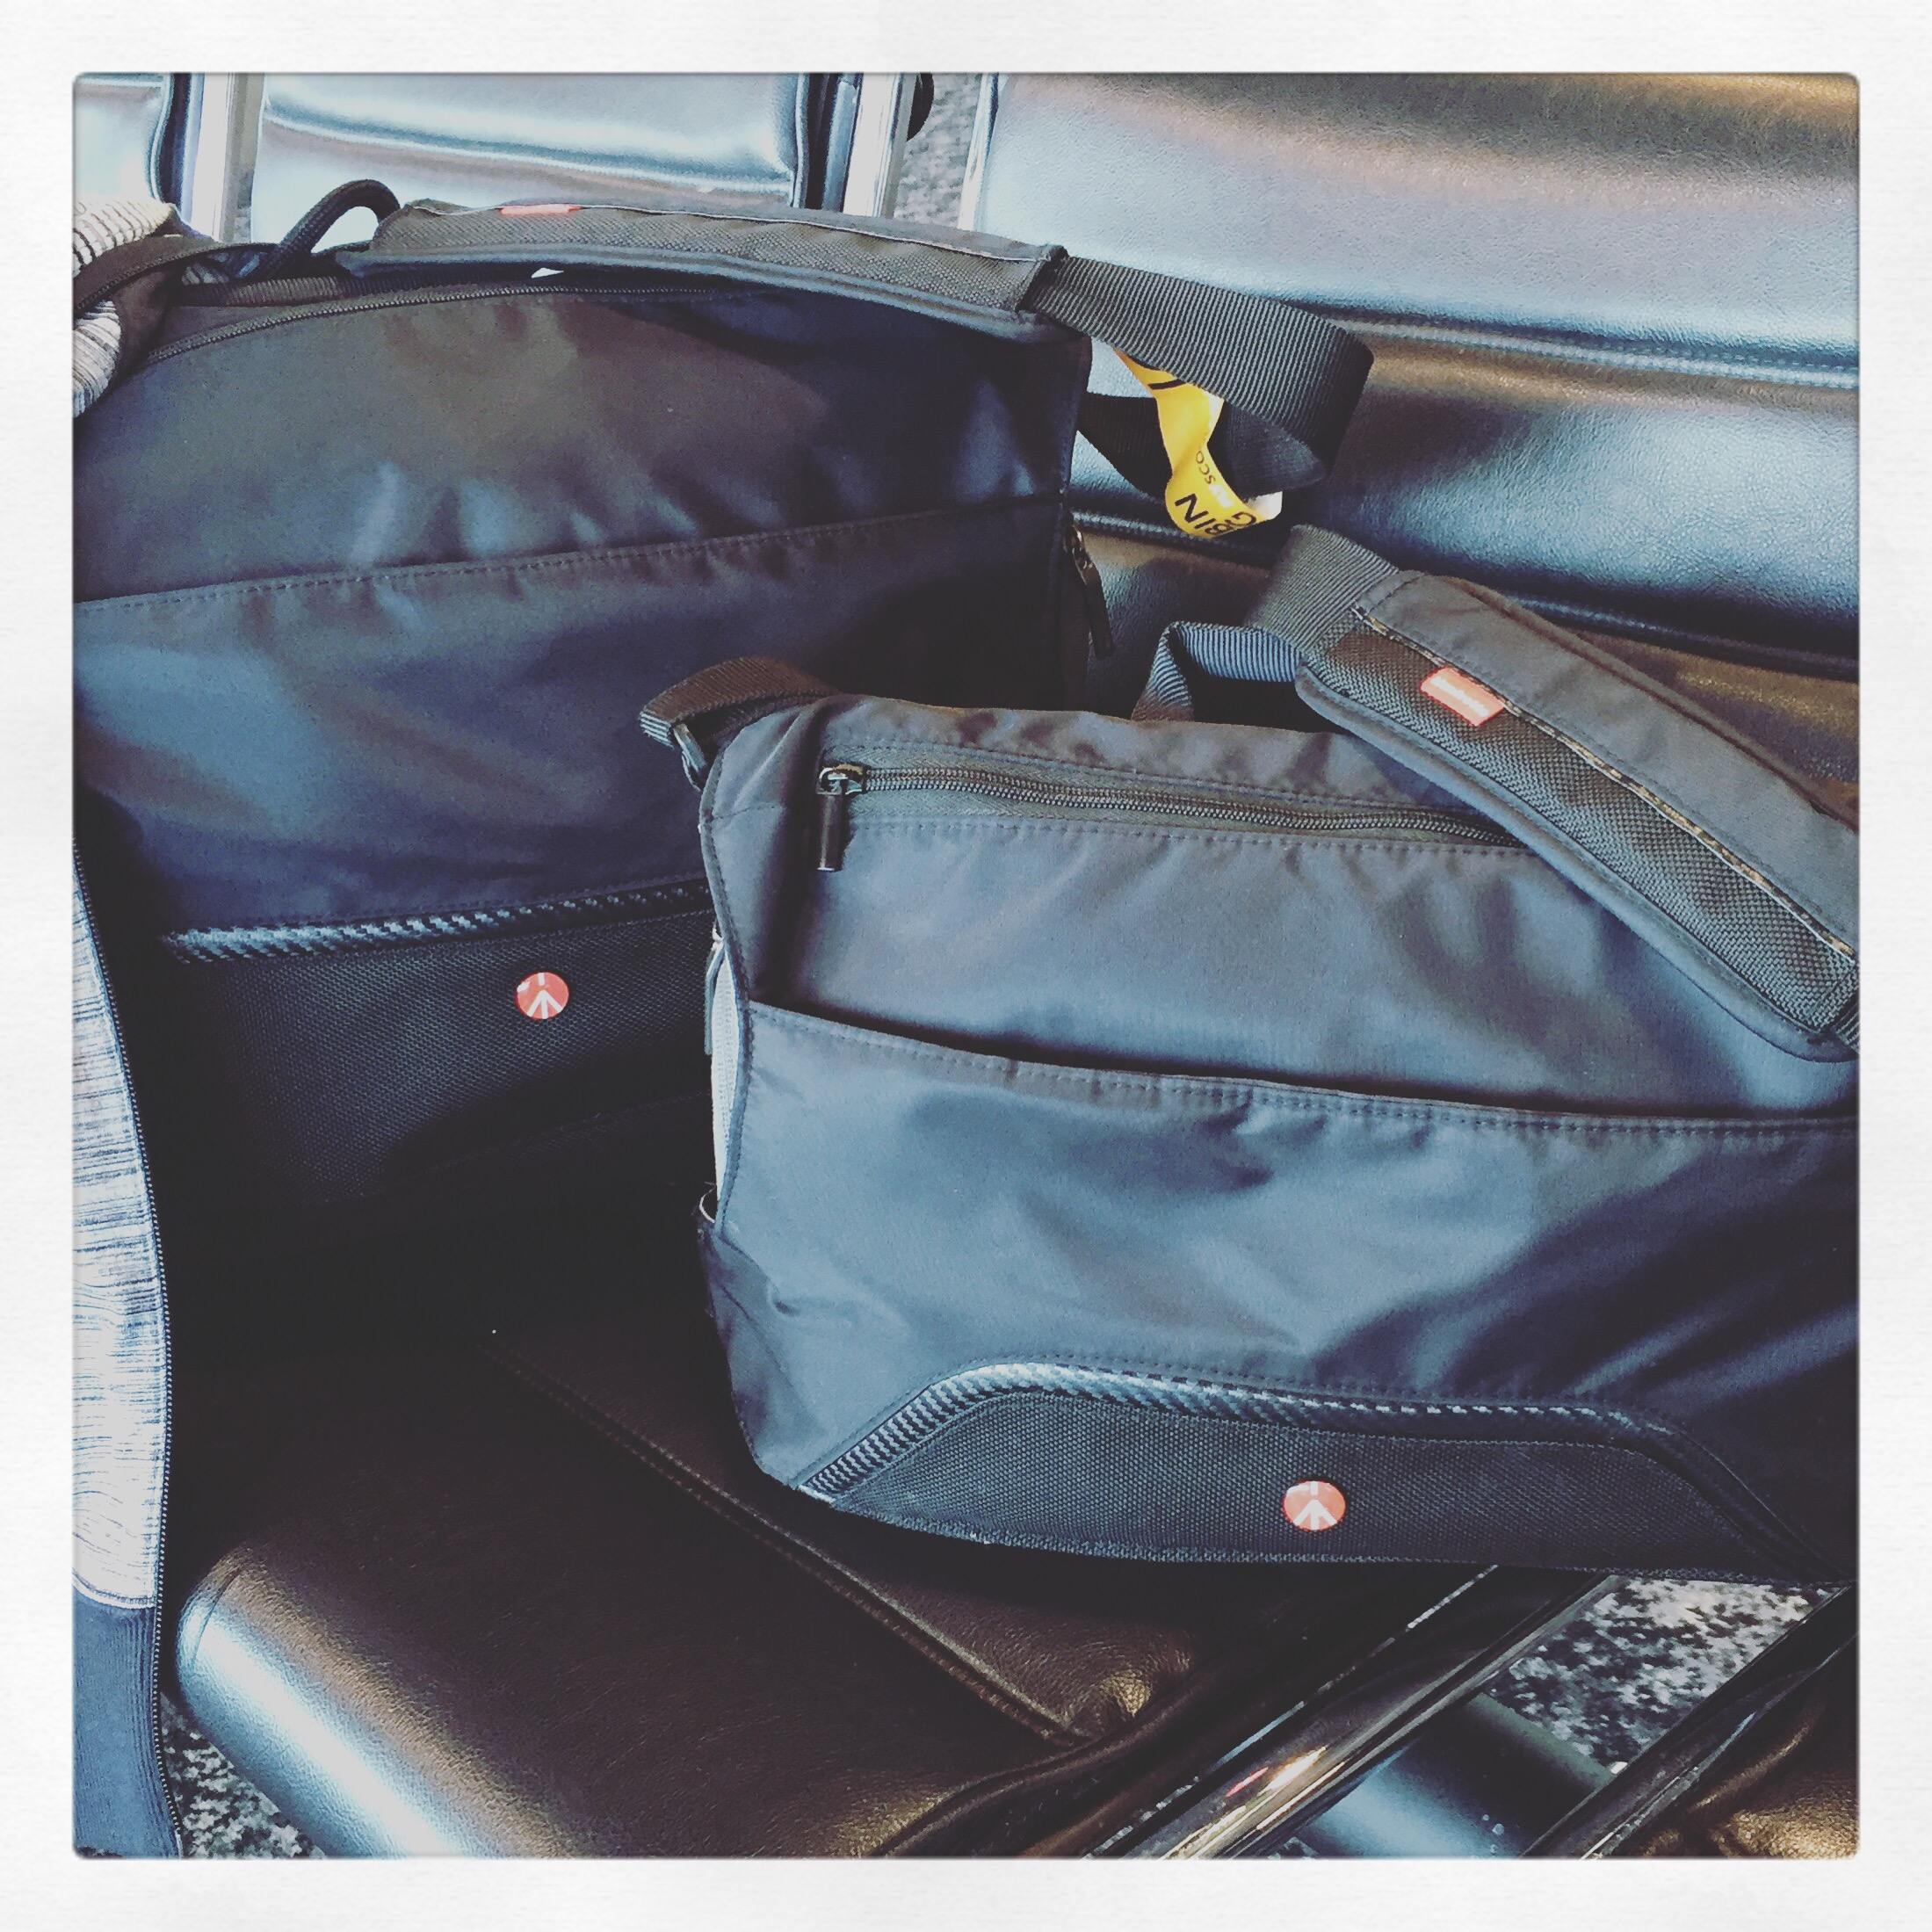 Day 1981. travel bags…